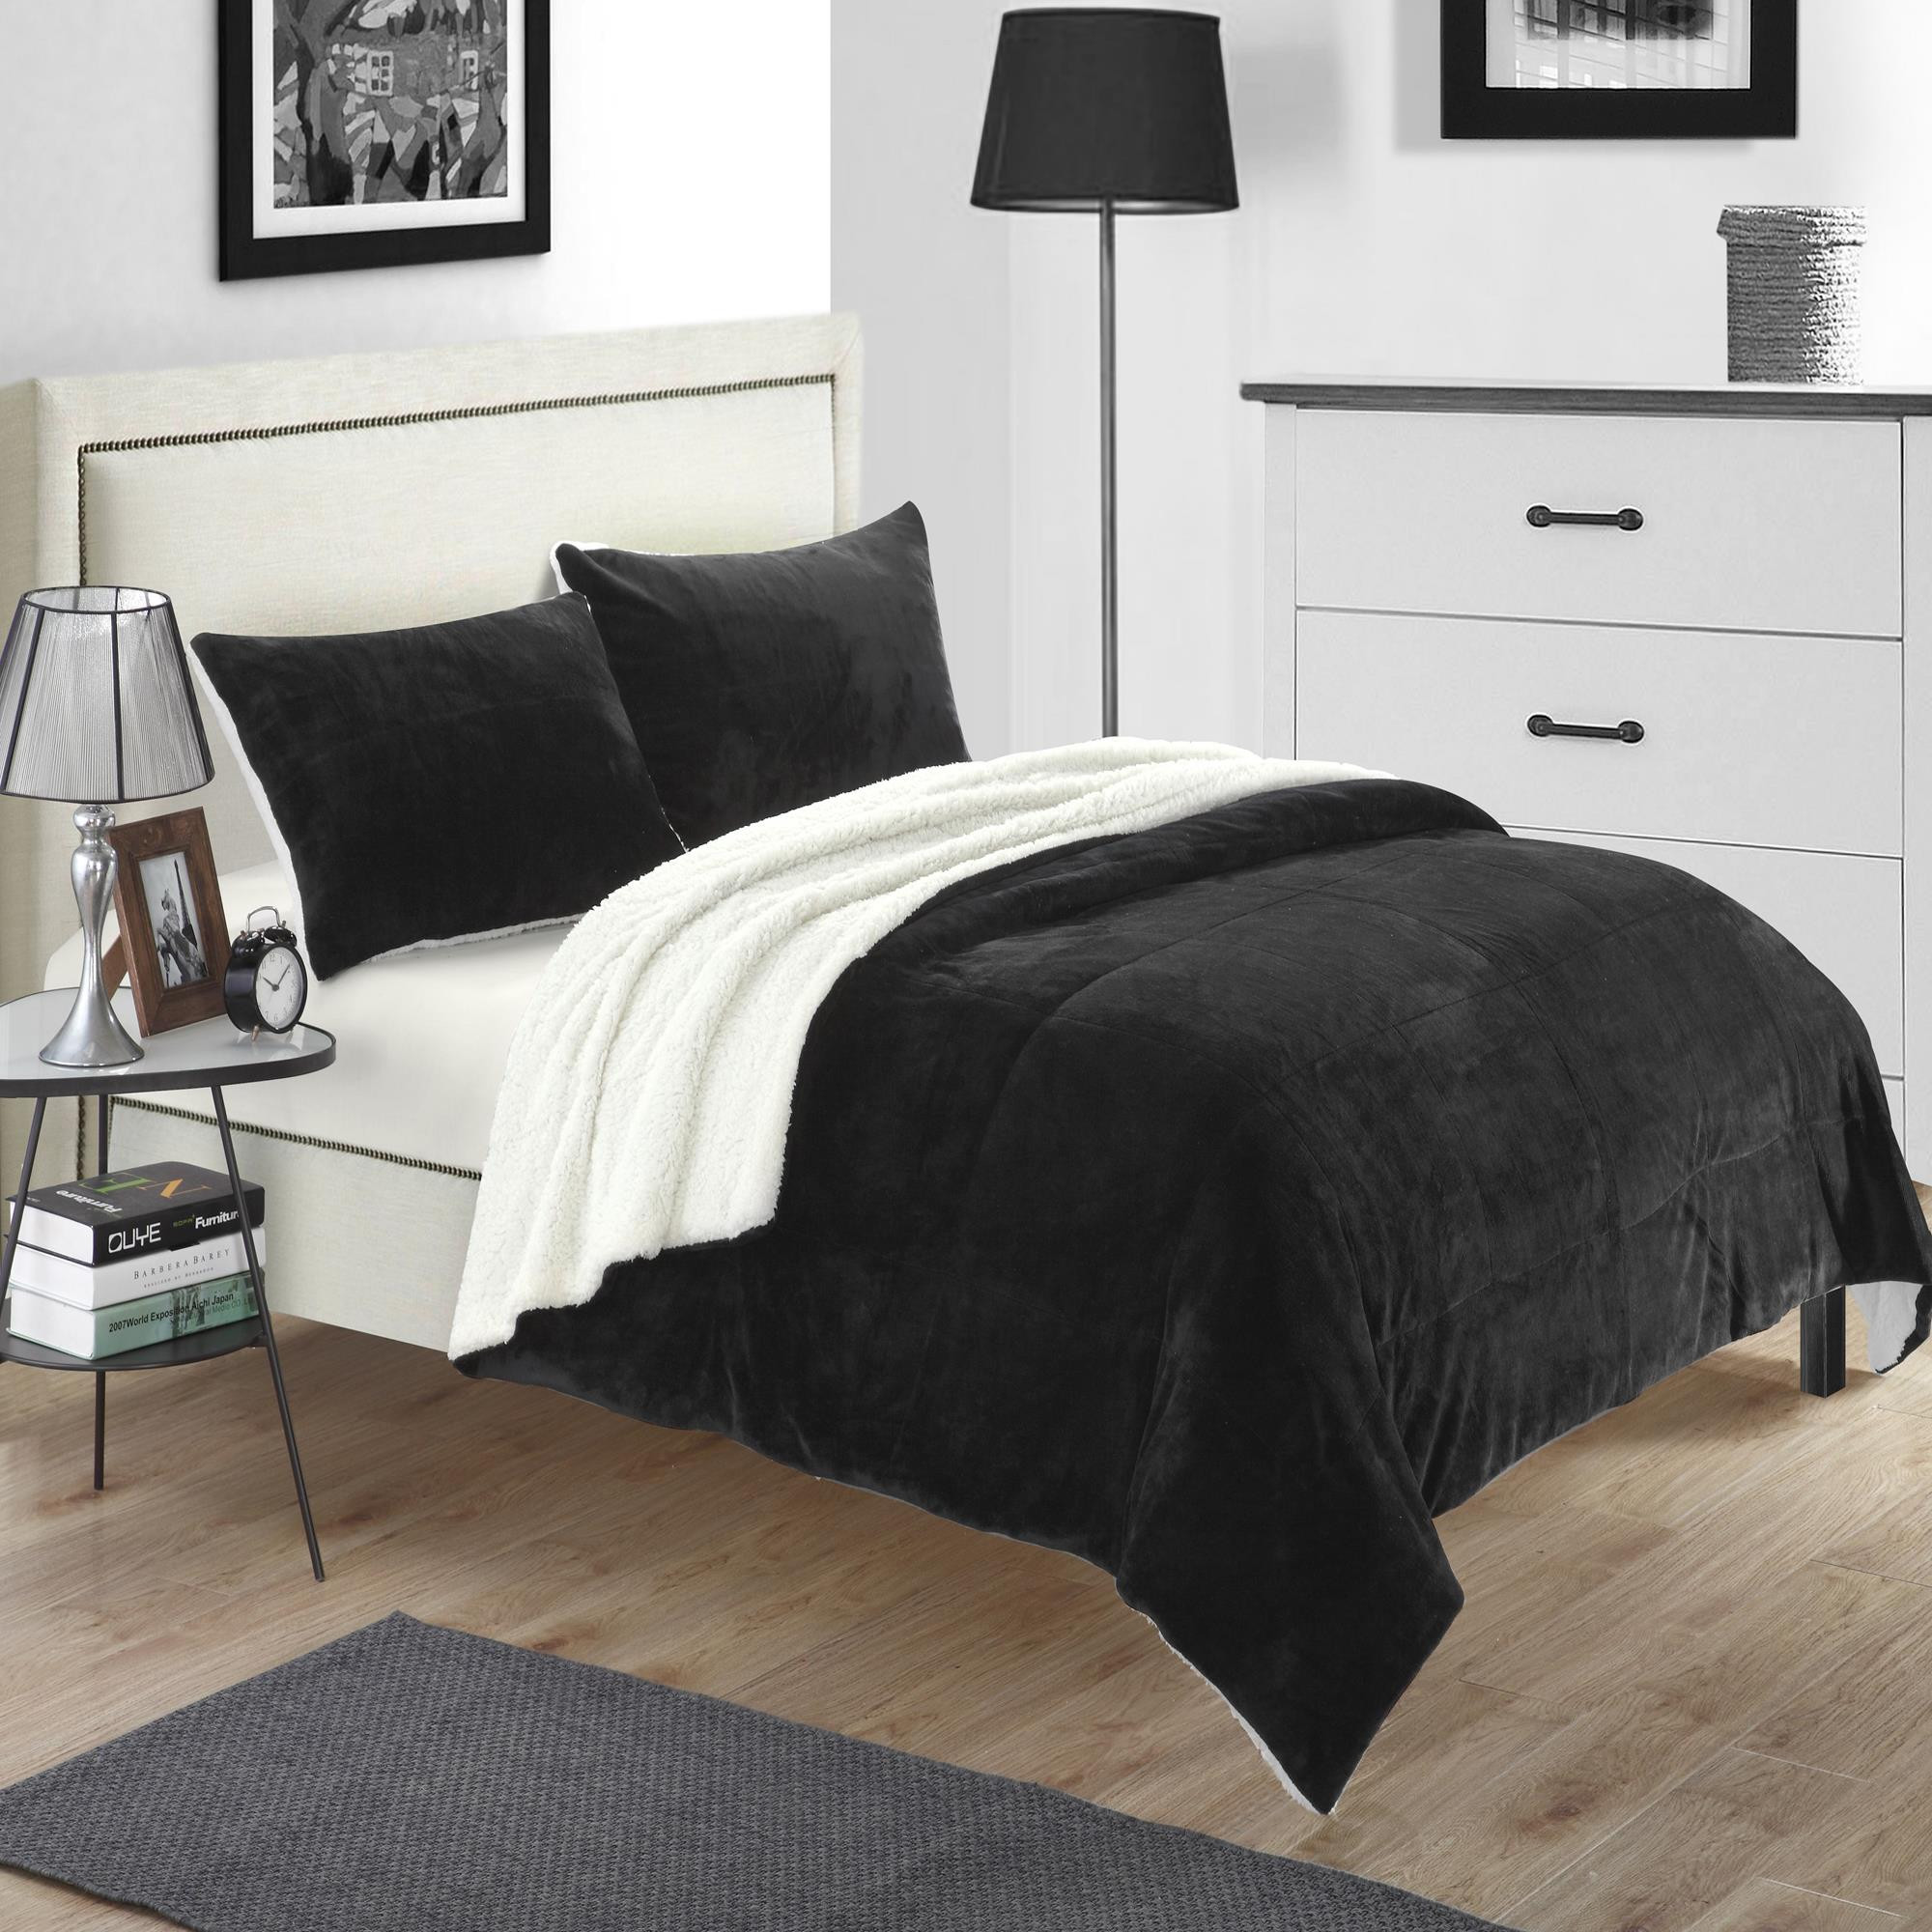 Evie Plush Microsuede Sherpa Lined Black 7 Piece Blanket In A Bag Set